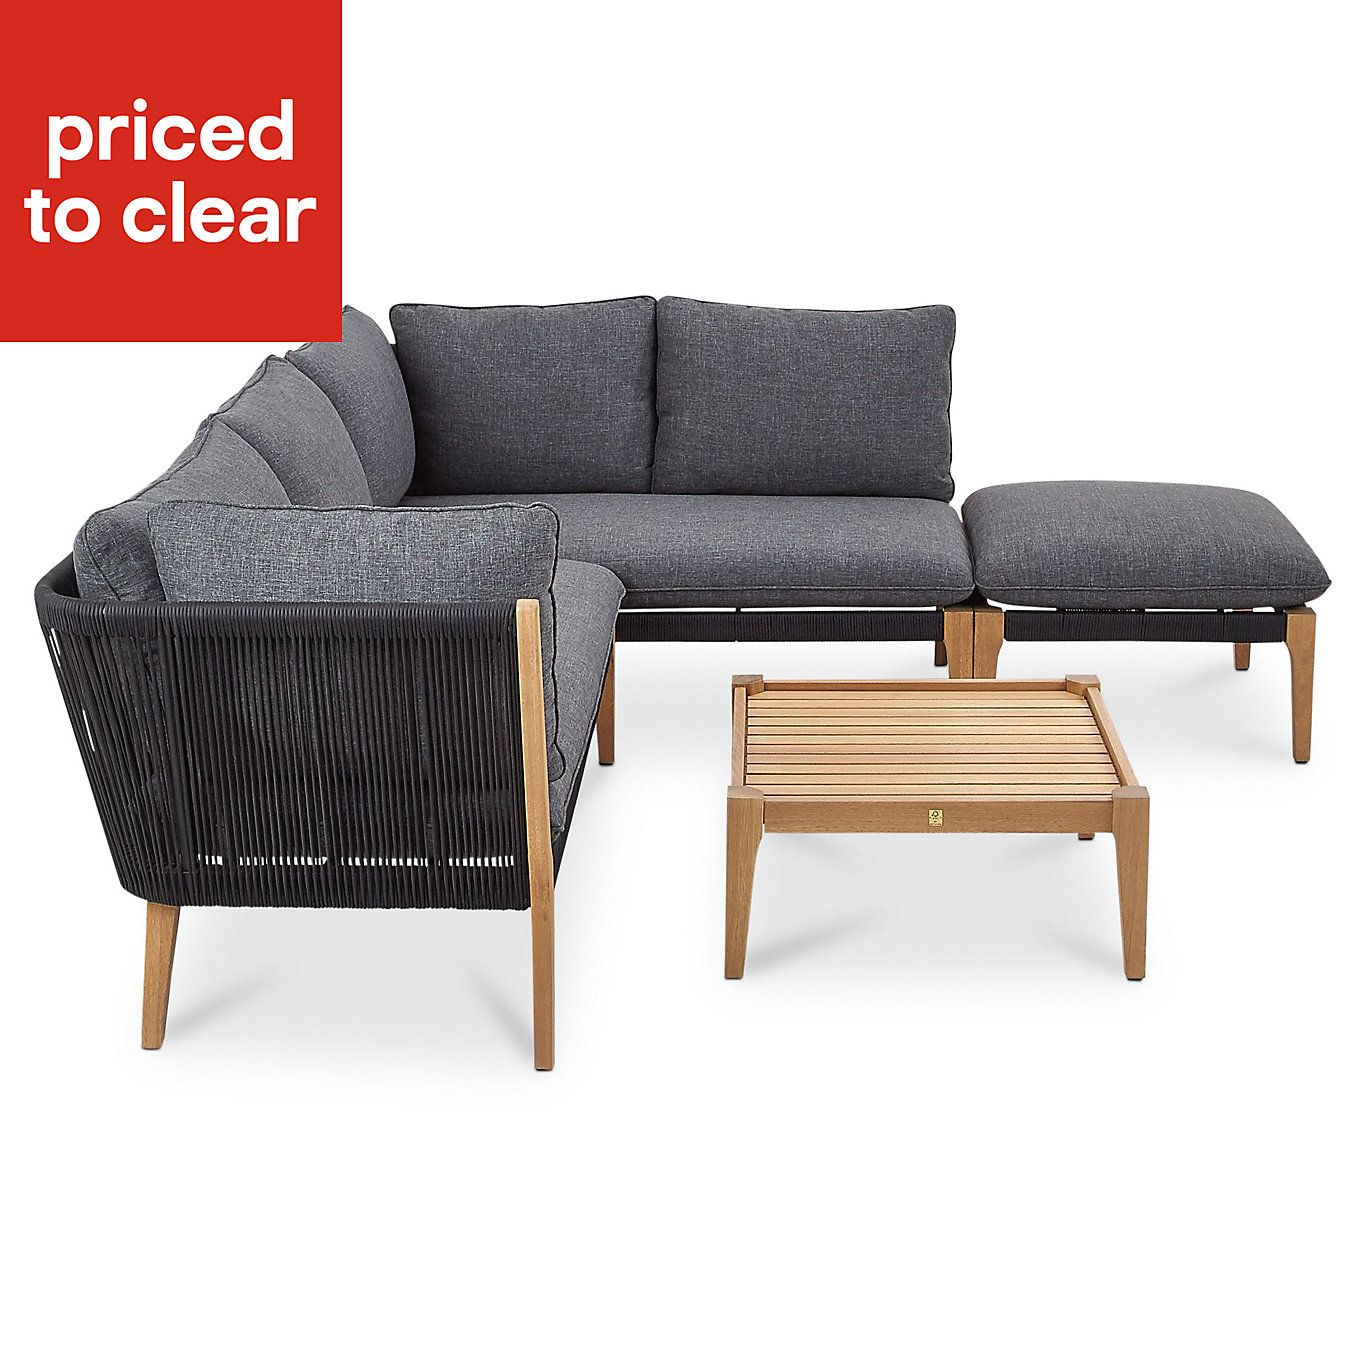 Juneau 6 Seater Coffee Set Furniture Outdoor Sectional Sofa Seater